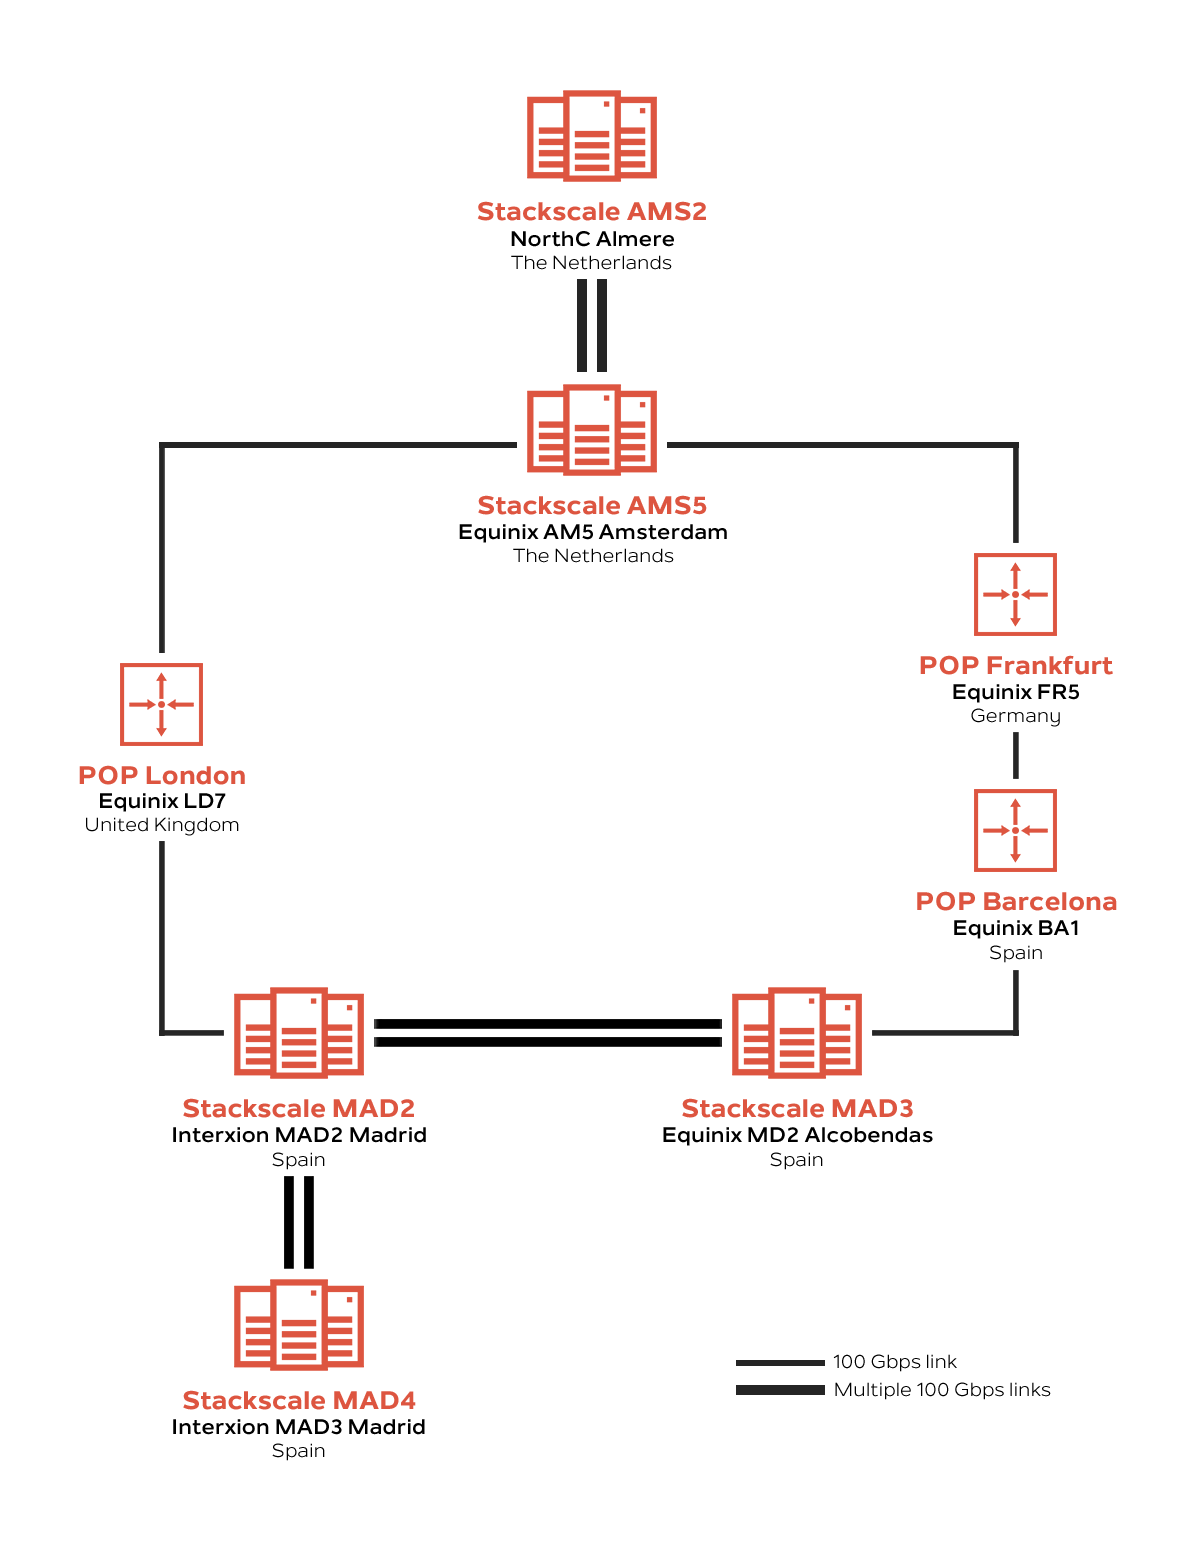 Stackscale's data centers network